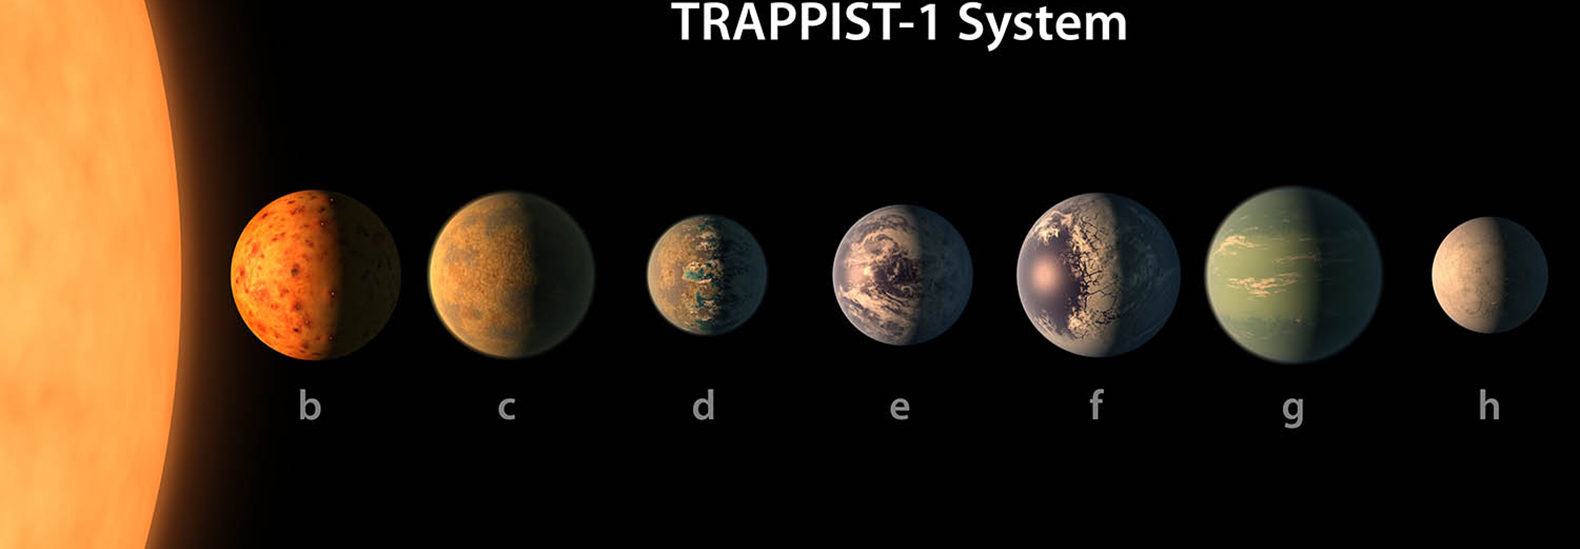 NASA discovers 3 potentially-habitable planets around a ...